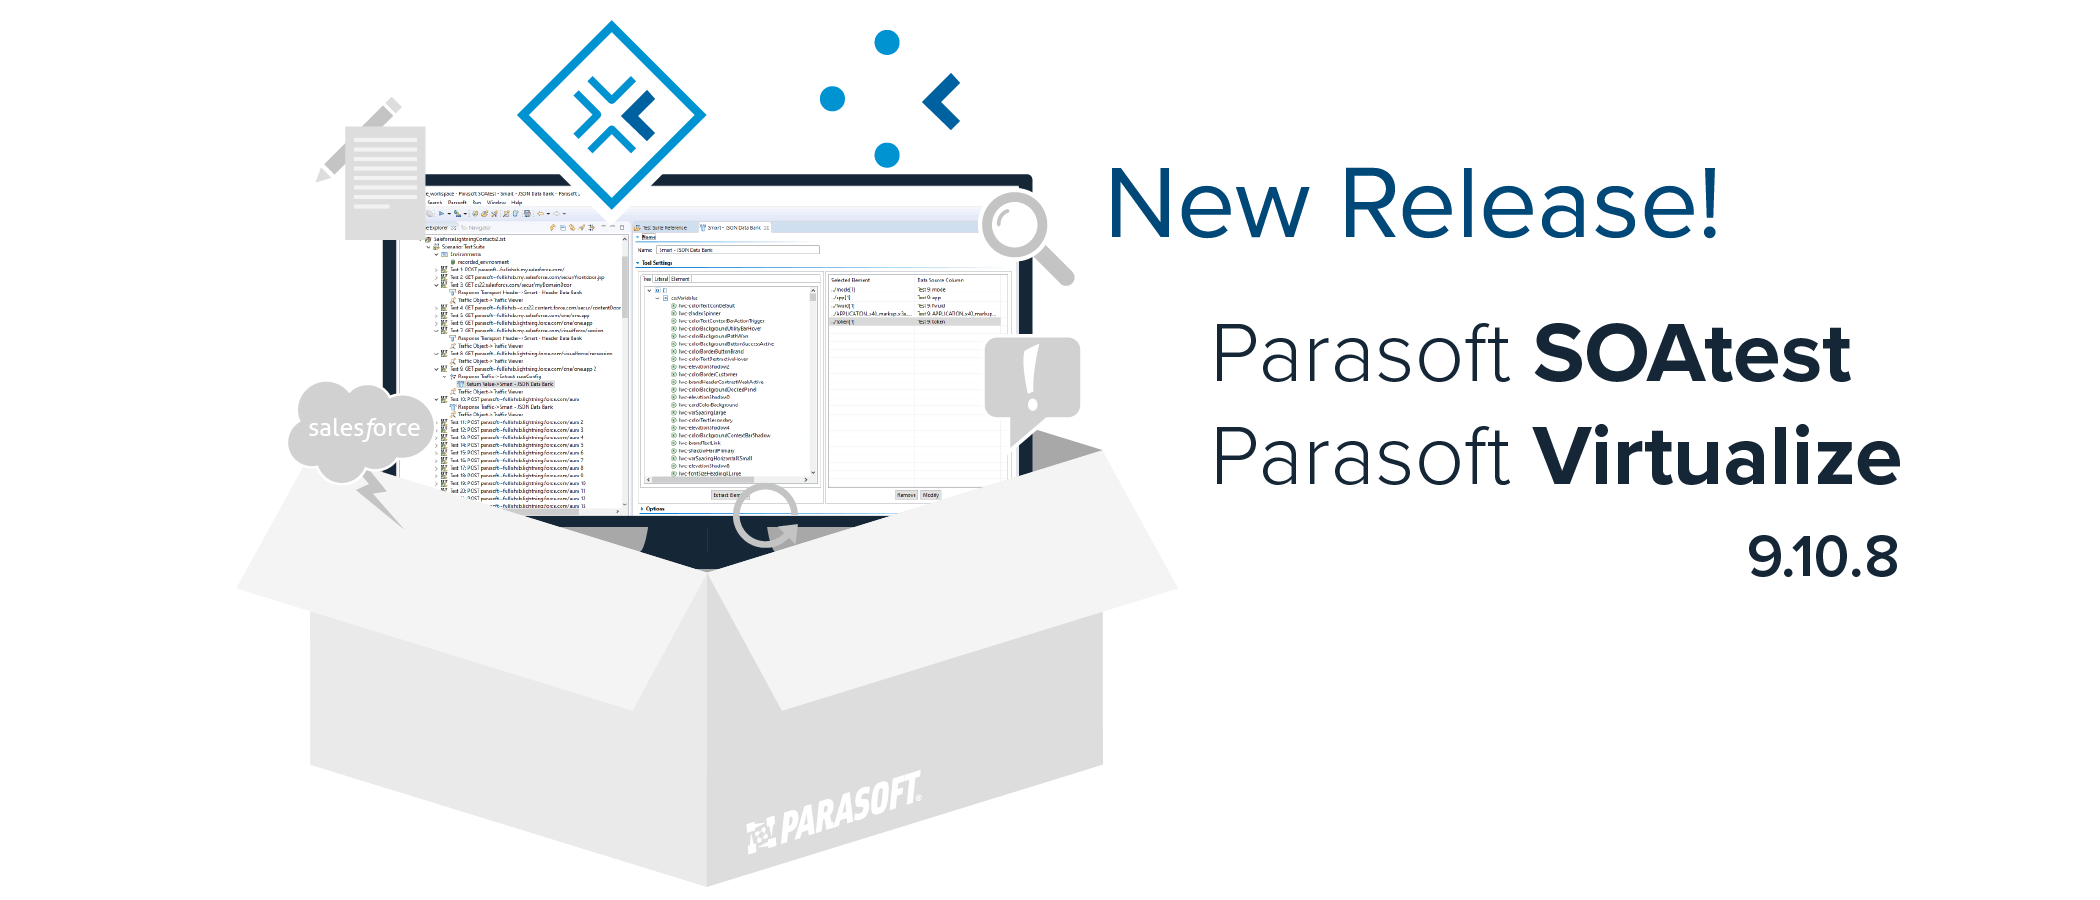 New 9.10.8 releases of Parasoft SOAtest and Parasoft Virtualize!